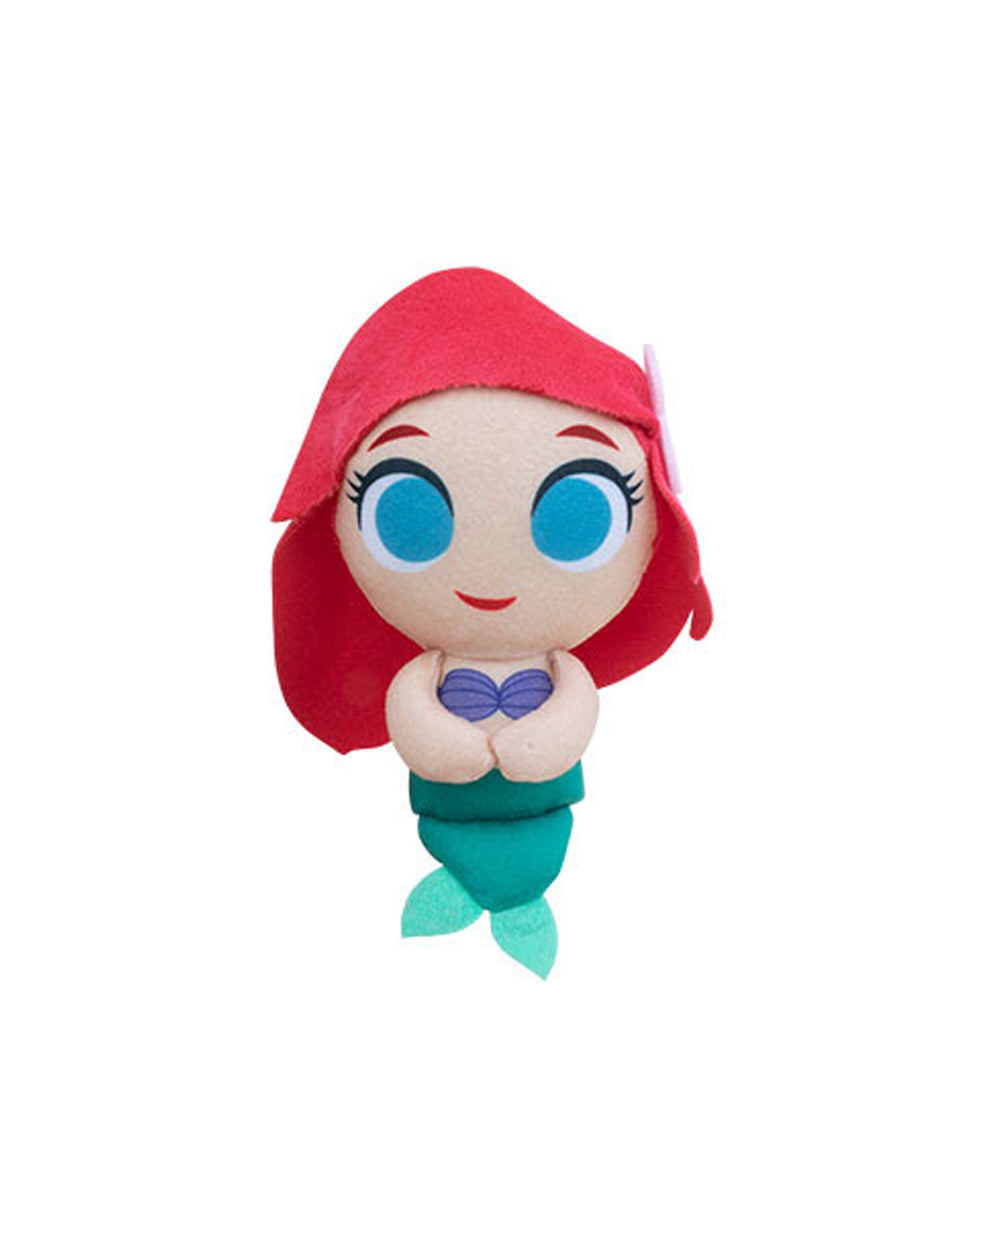 Funko Plush - Ariel Ultimate Princess Collection *PREORDER* - The Pink a la Mode - Funko - The Pink a la Mode